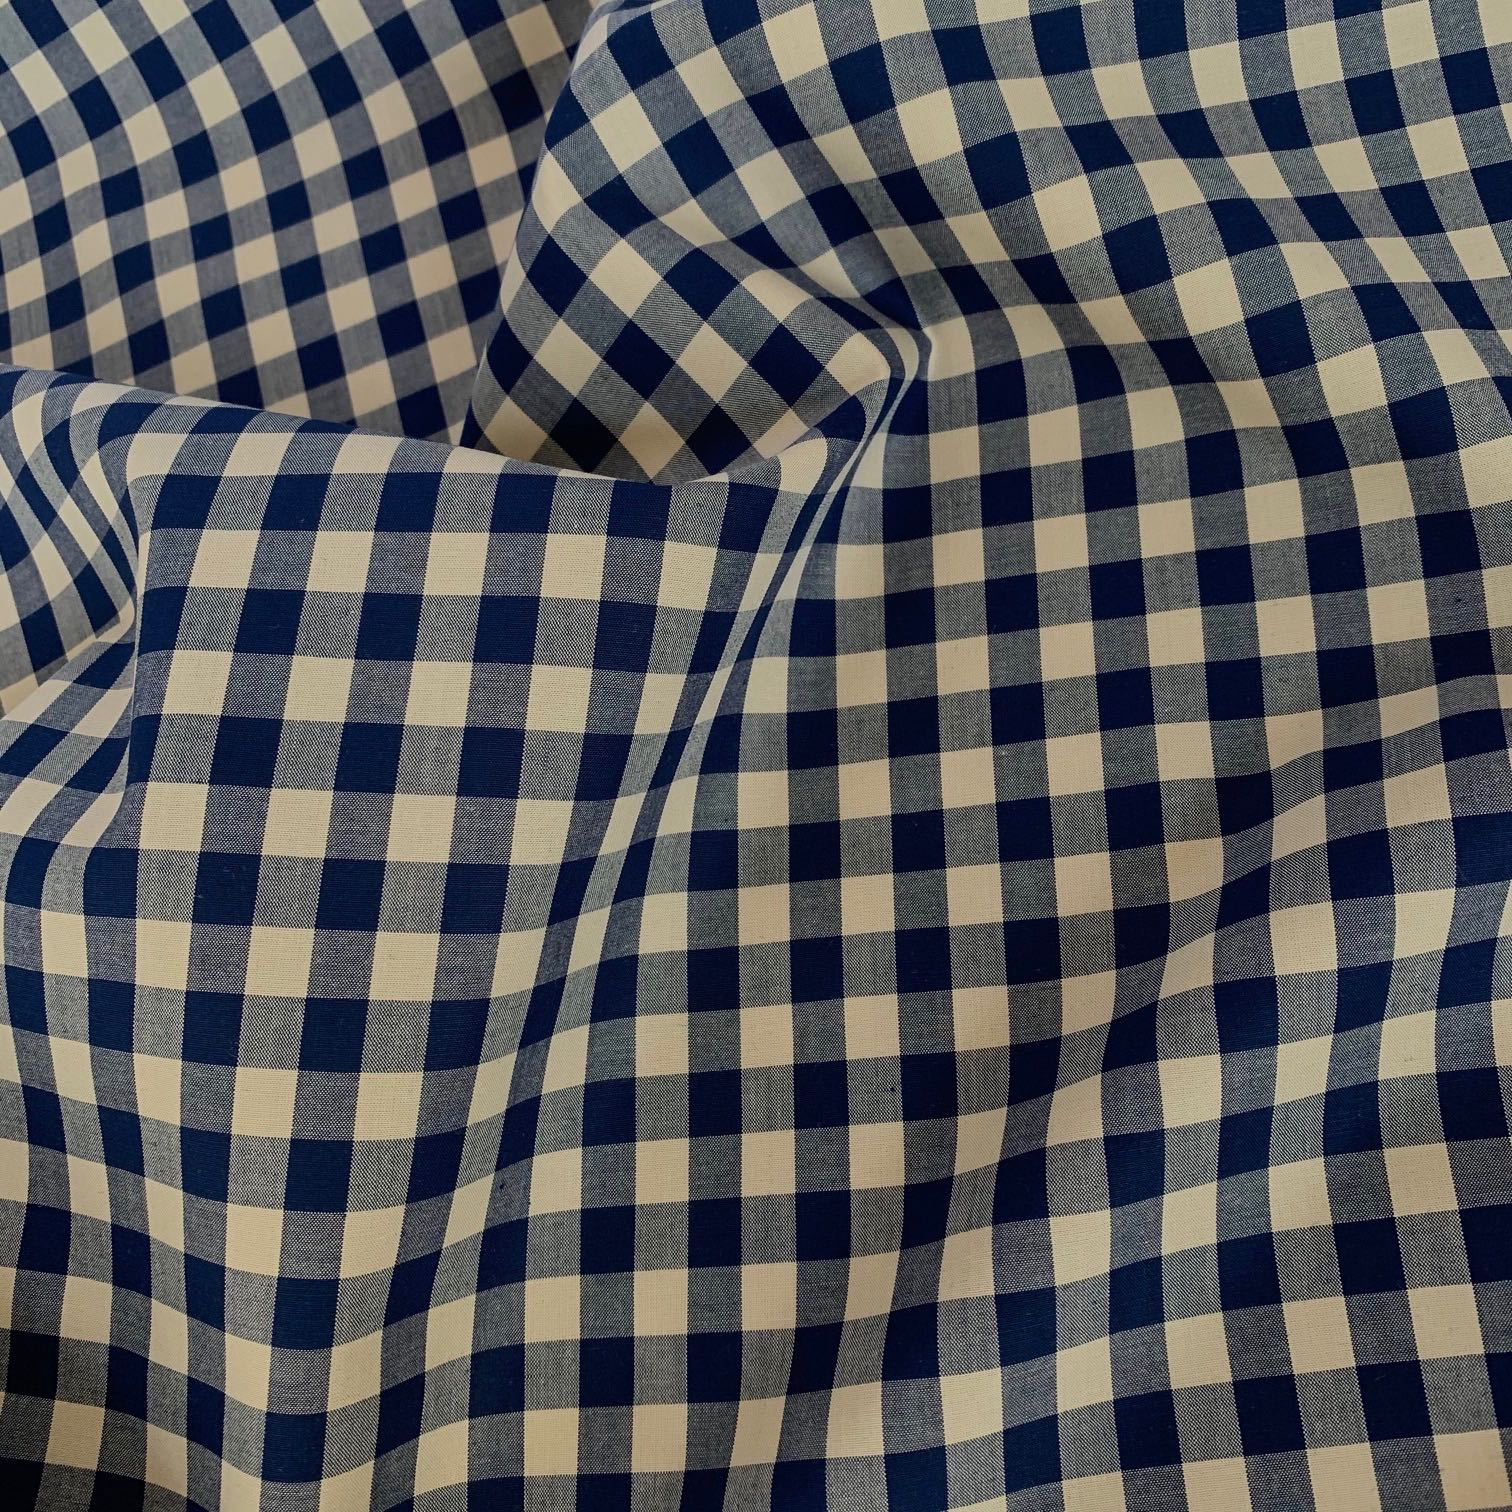 Woven Cotton Gingham Fabric Blue